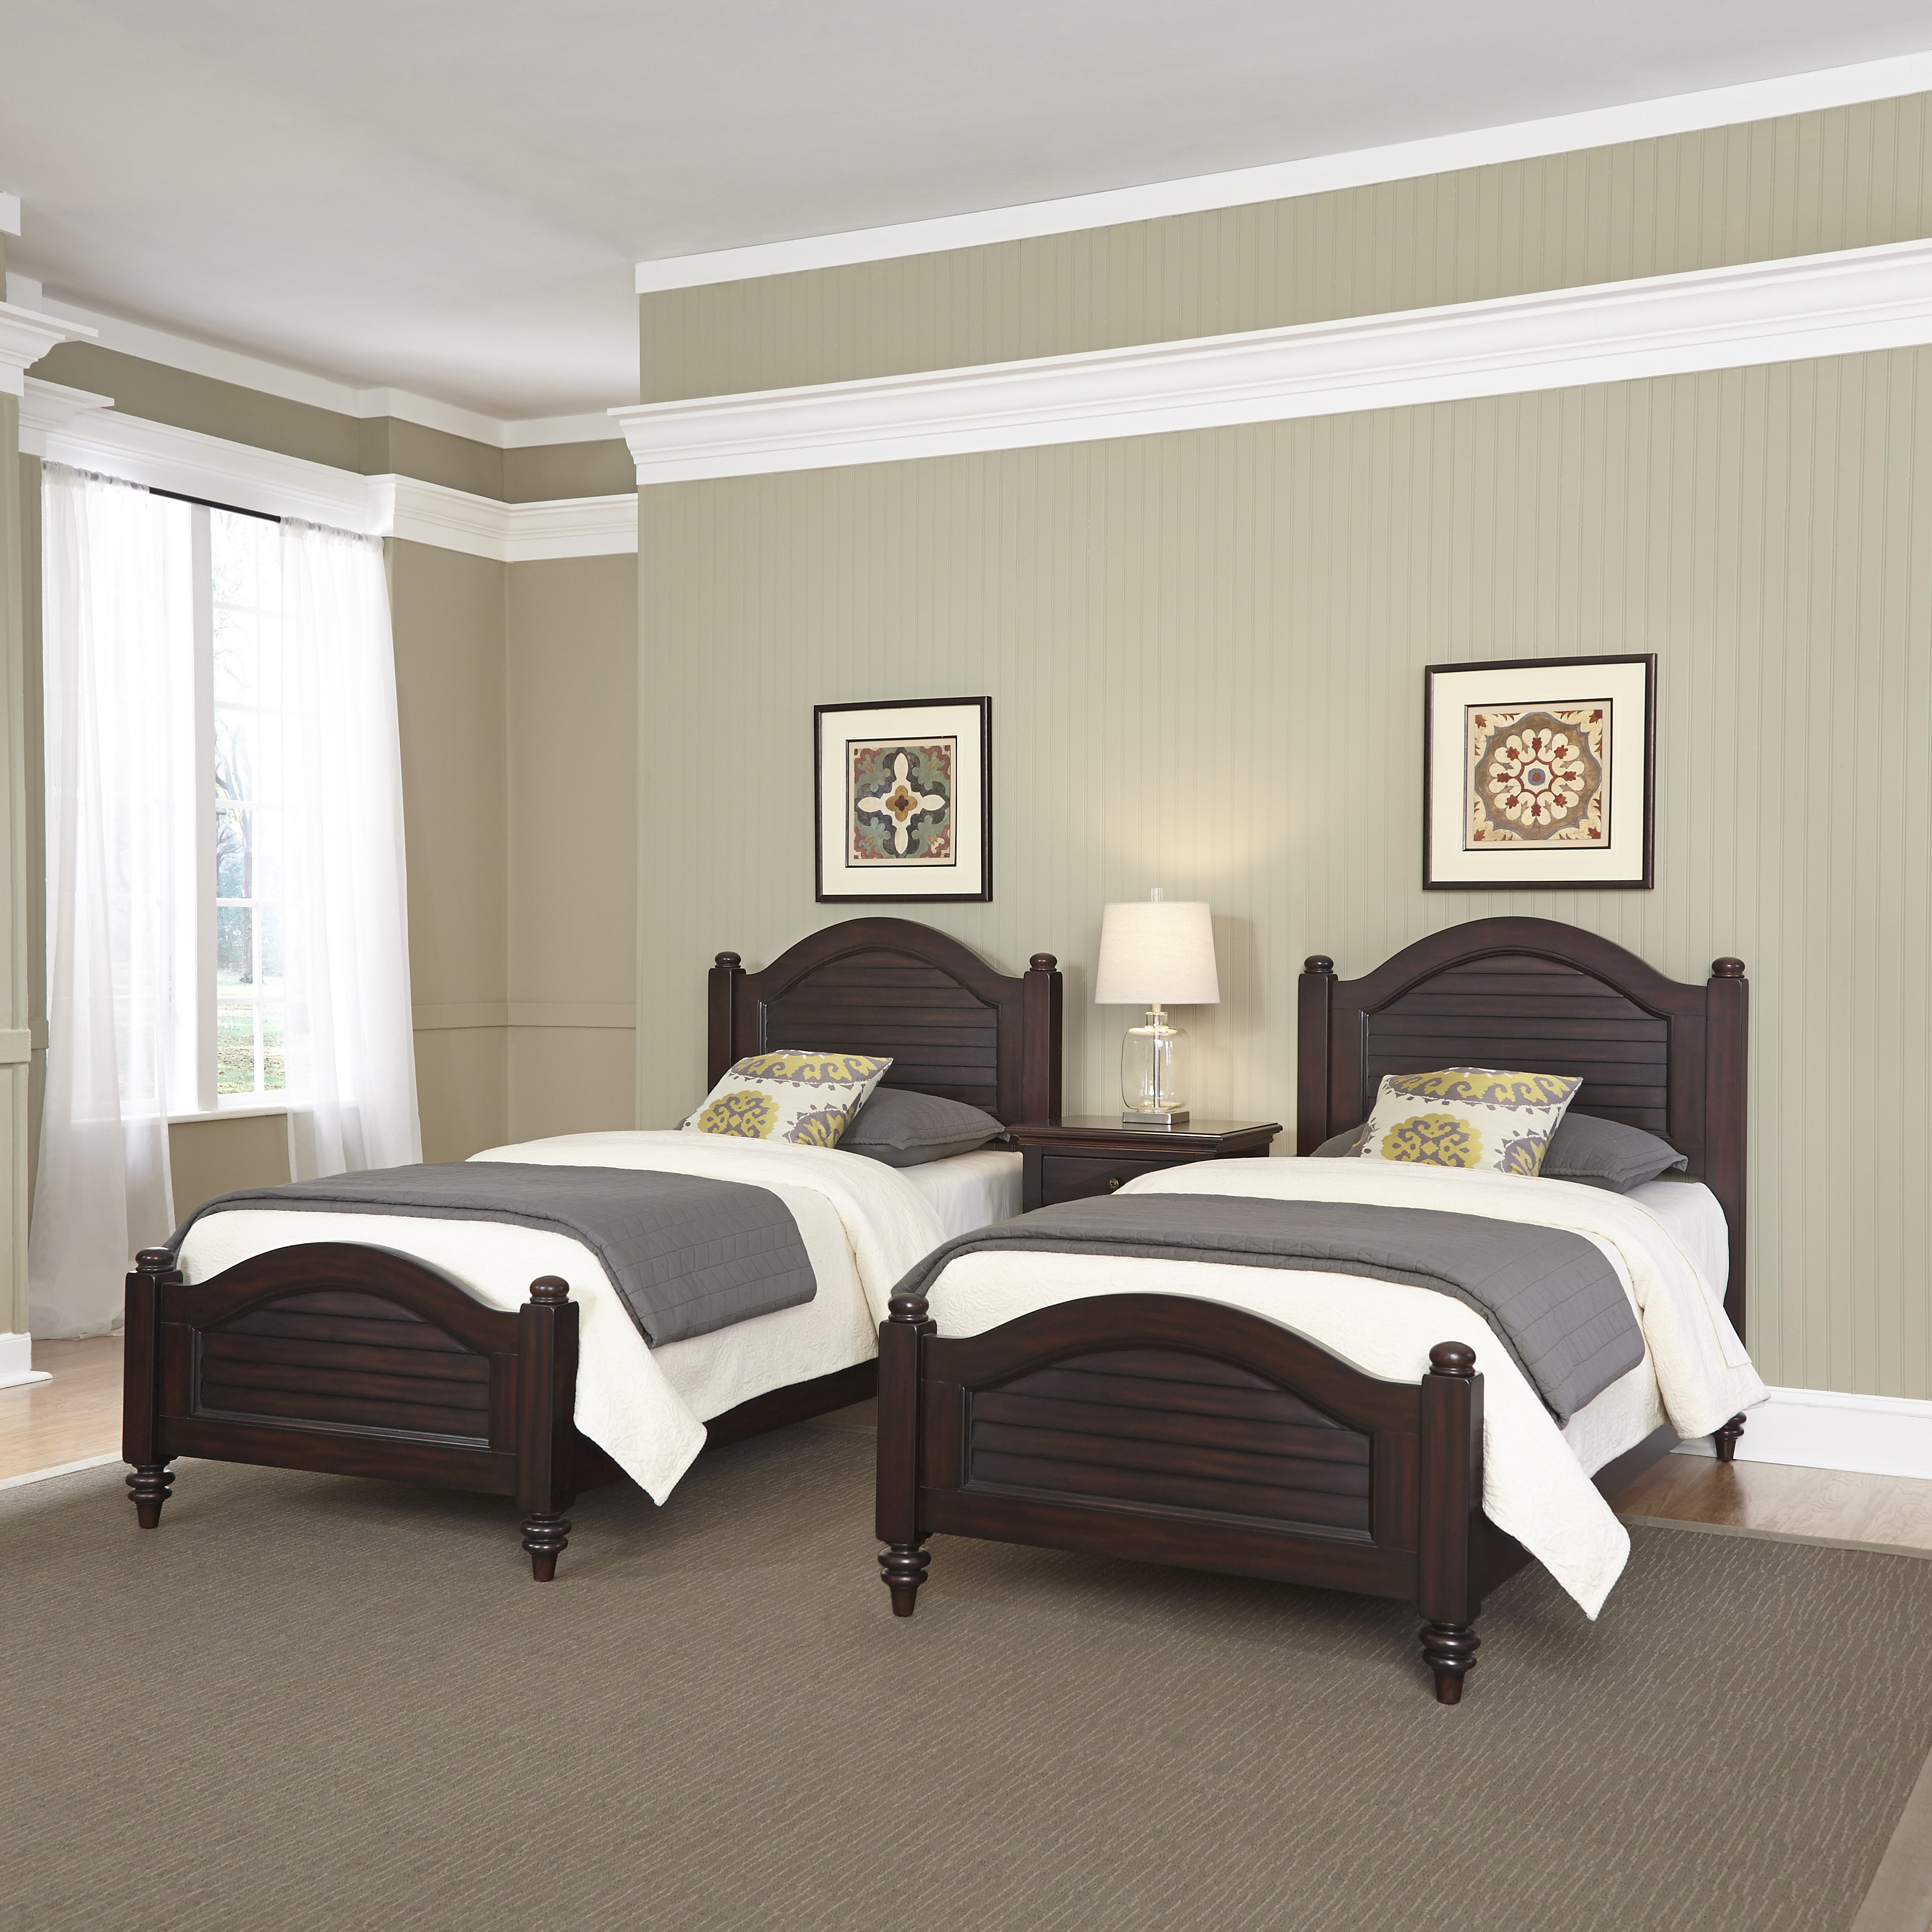 How To Be More Confident In Bed Home Styles Bermuda Espresso Two Twin Beds And Night Stand